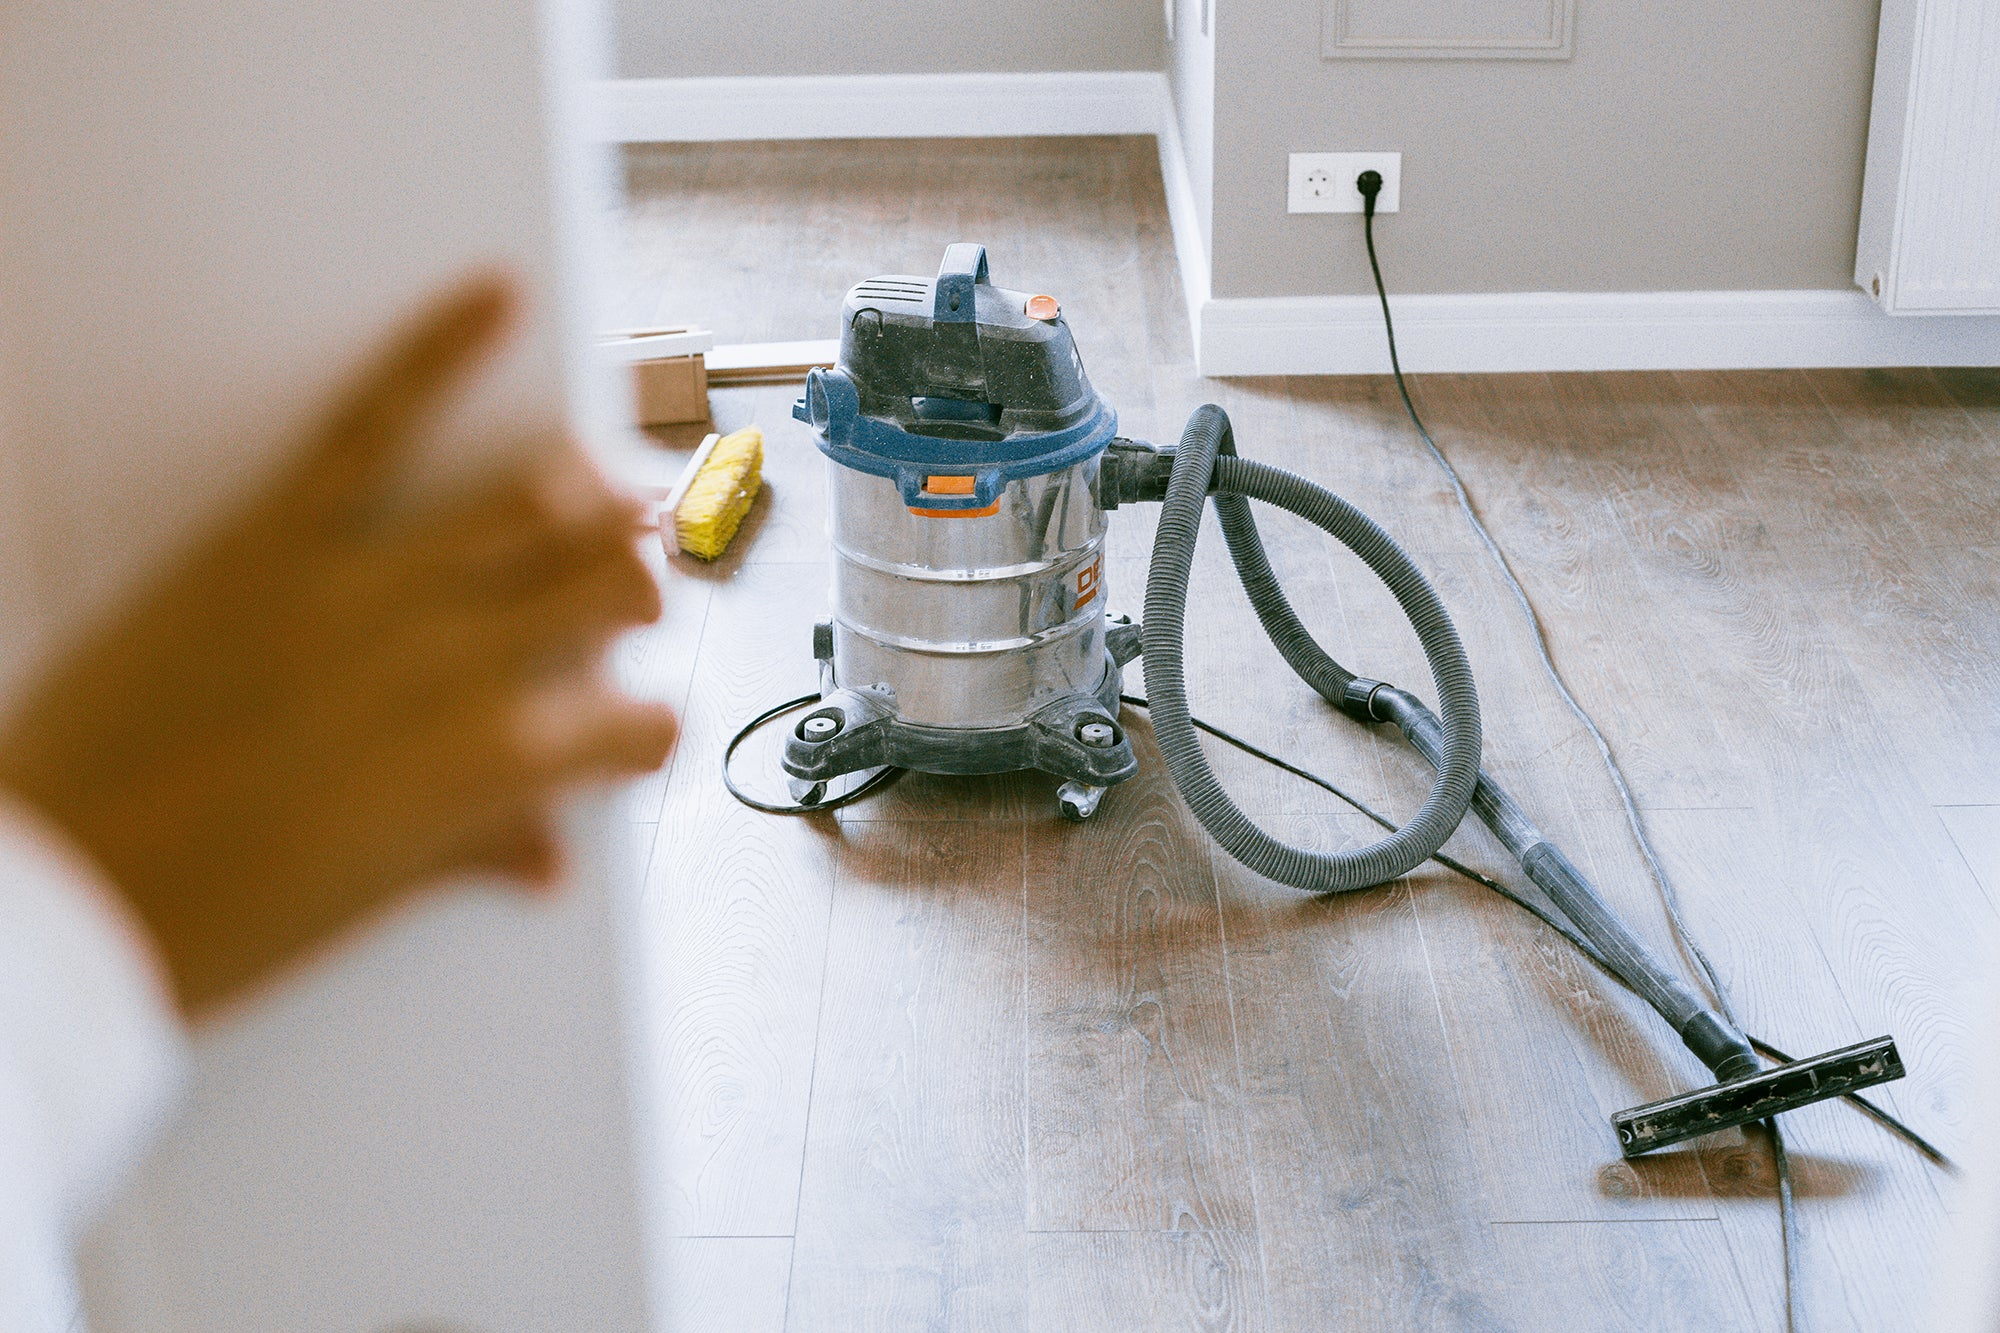 the best shop vac on the floor and a hand holding a door